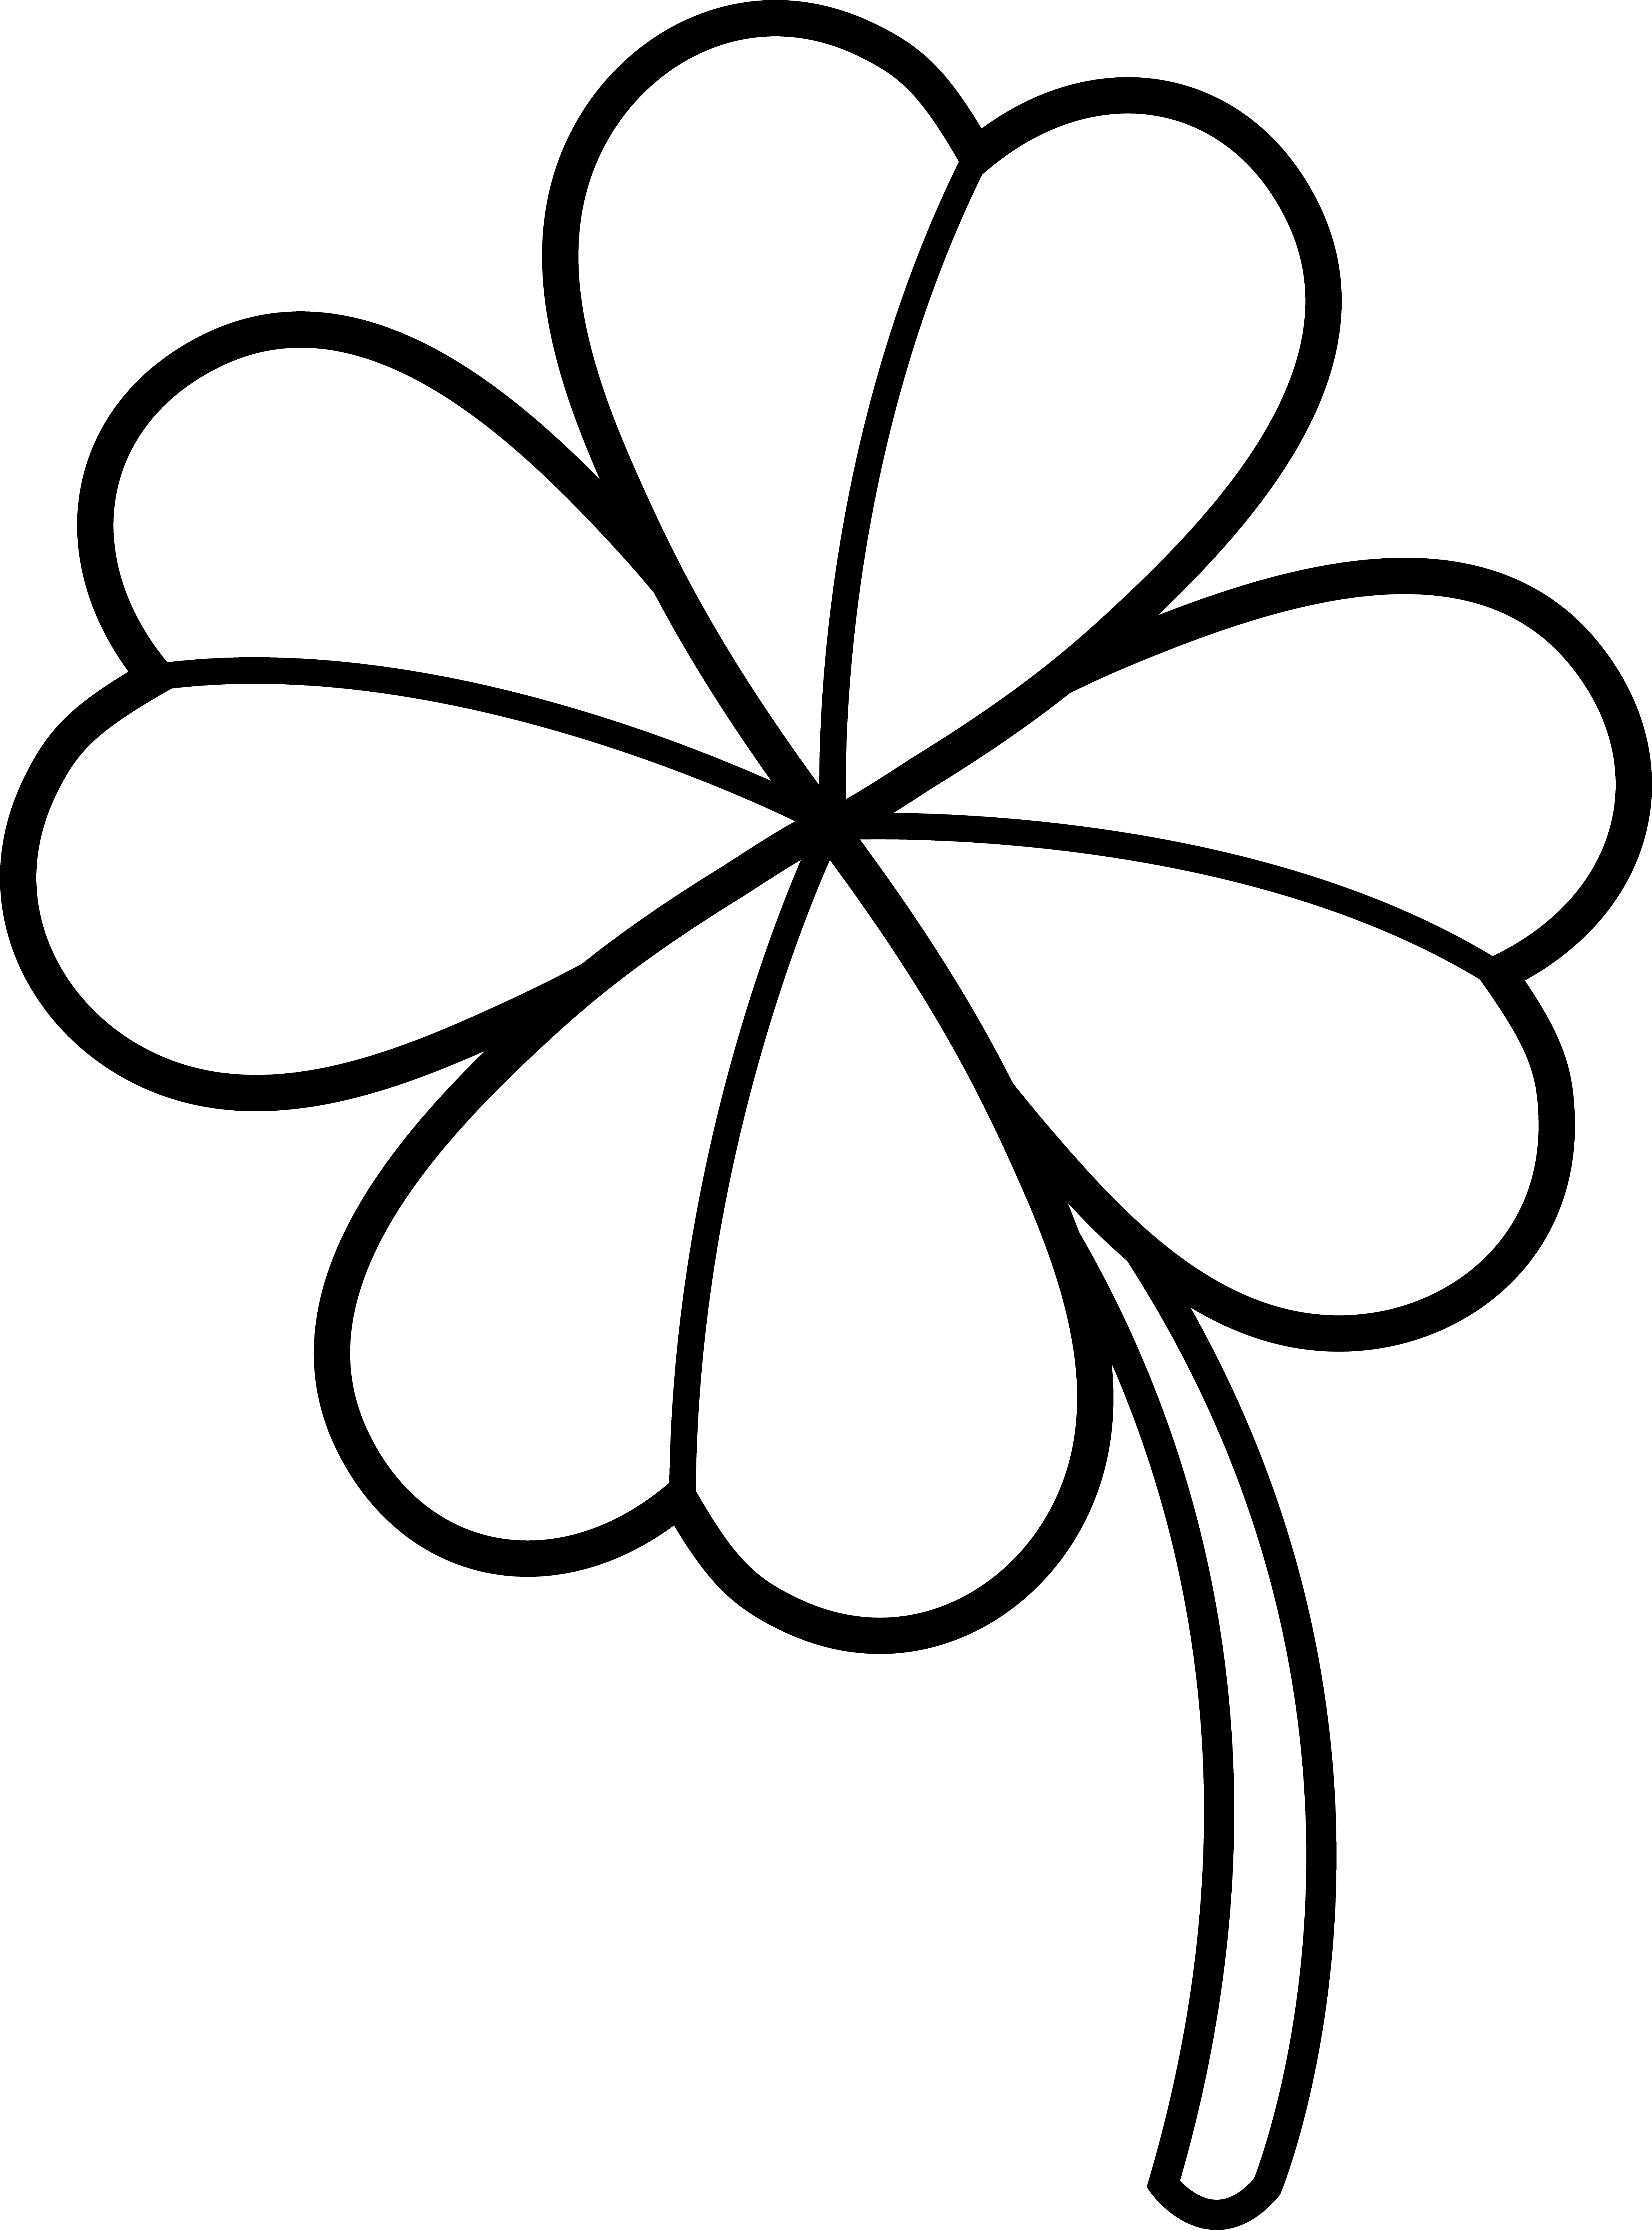 White four leaf clover png. Collection of clipart